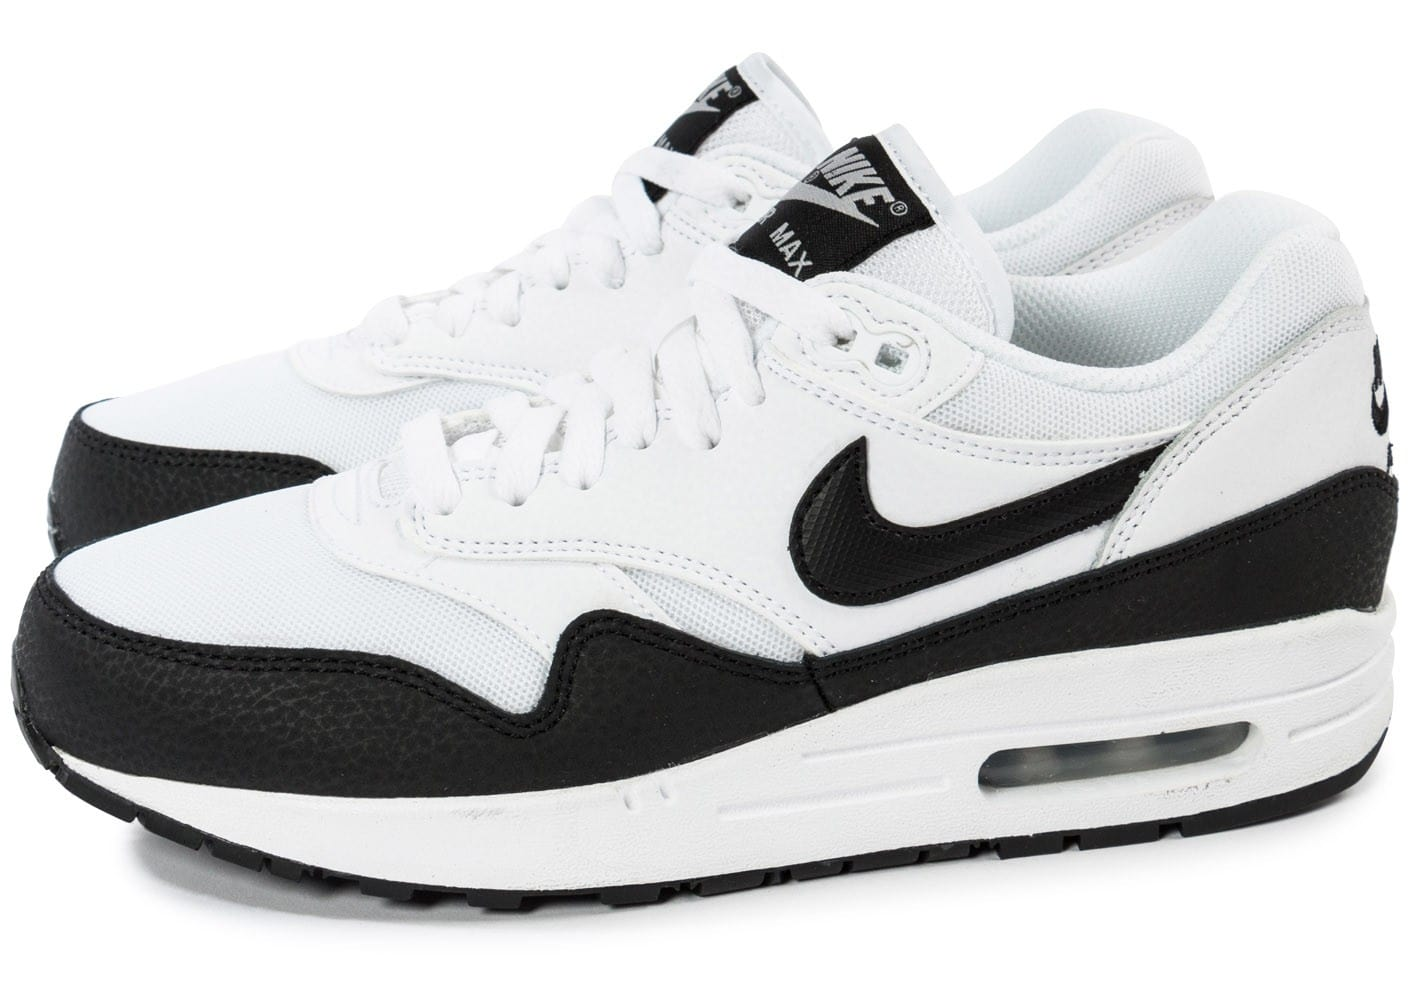 huge selection of cd89f 33a00 Nike Air Max 1 Homme Noir/Blanc M1H041 gZXtS Les ventes totales